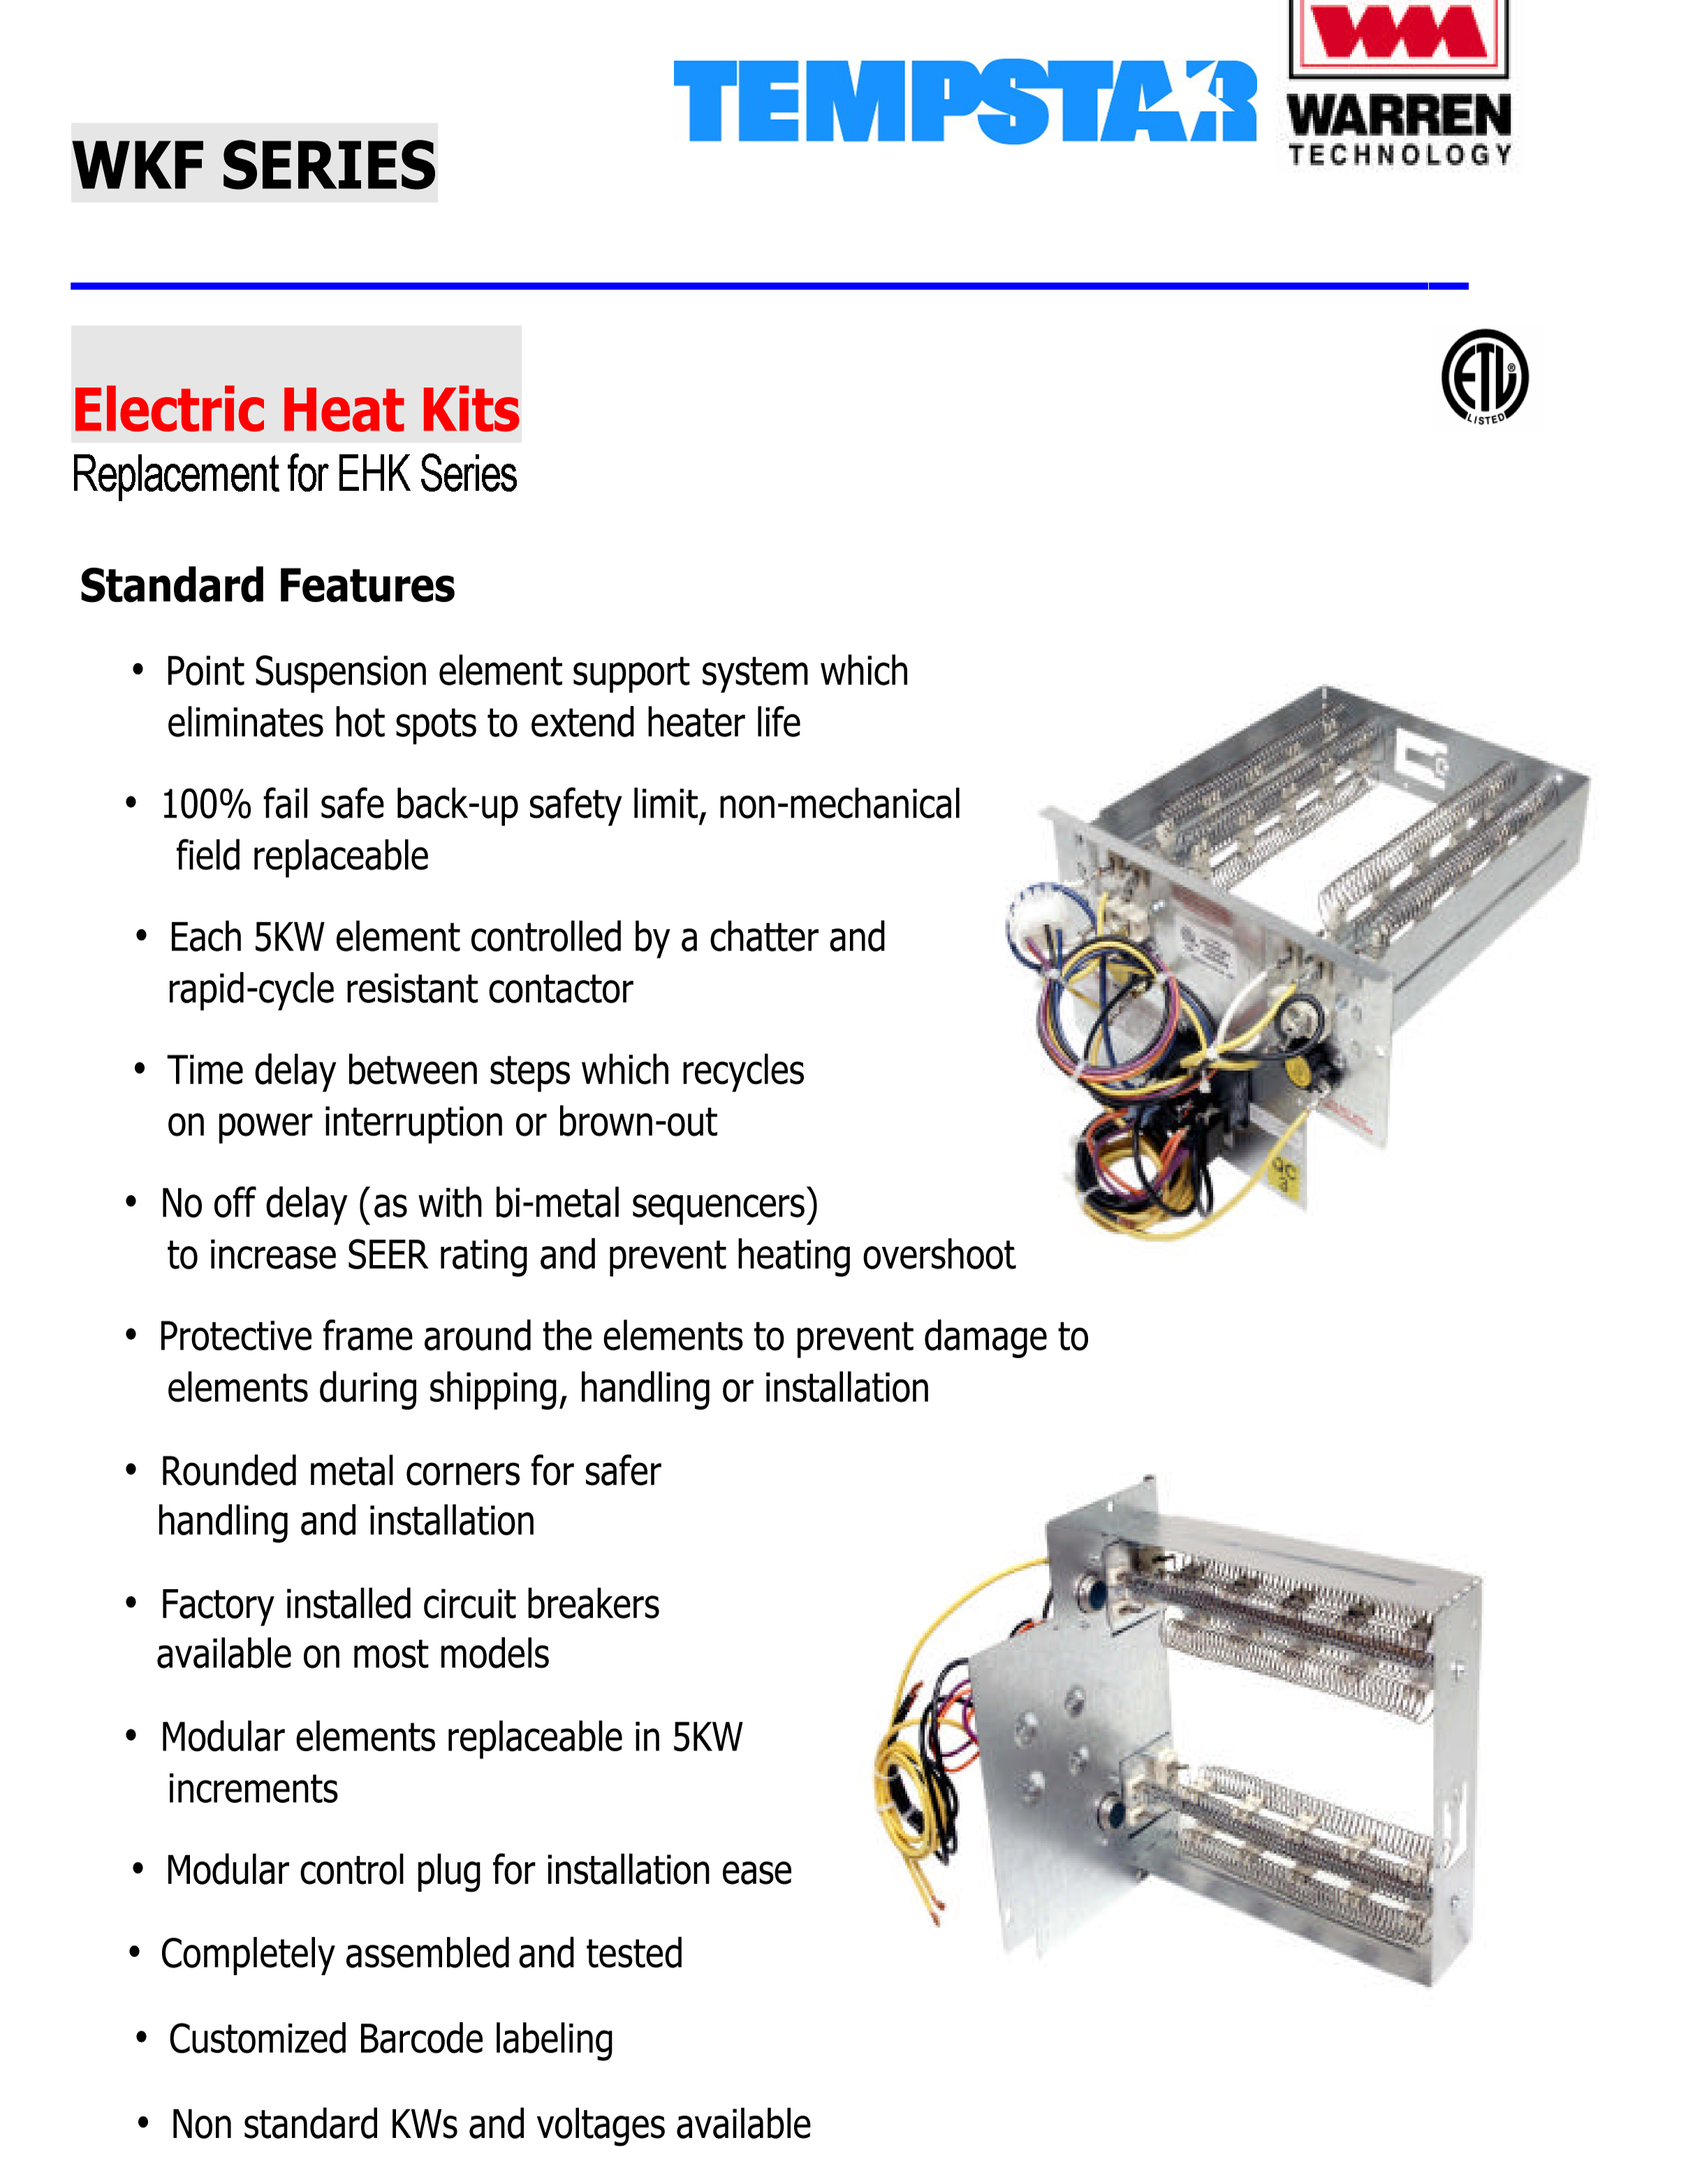 tempstar wkf brochure 10 kw heat strip for tempstar air handlers eb(p x v), wa, fe, fs electric heat strip wiring diagram at reclaimingppi.co